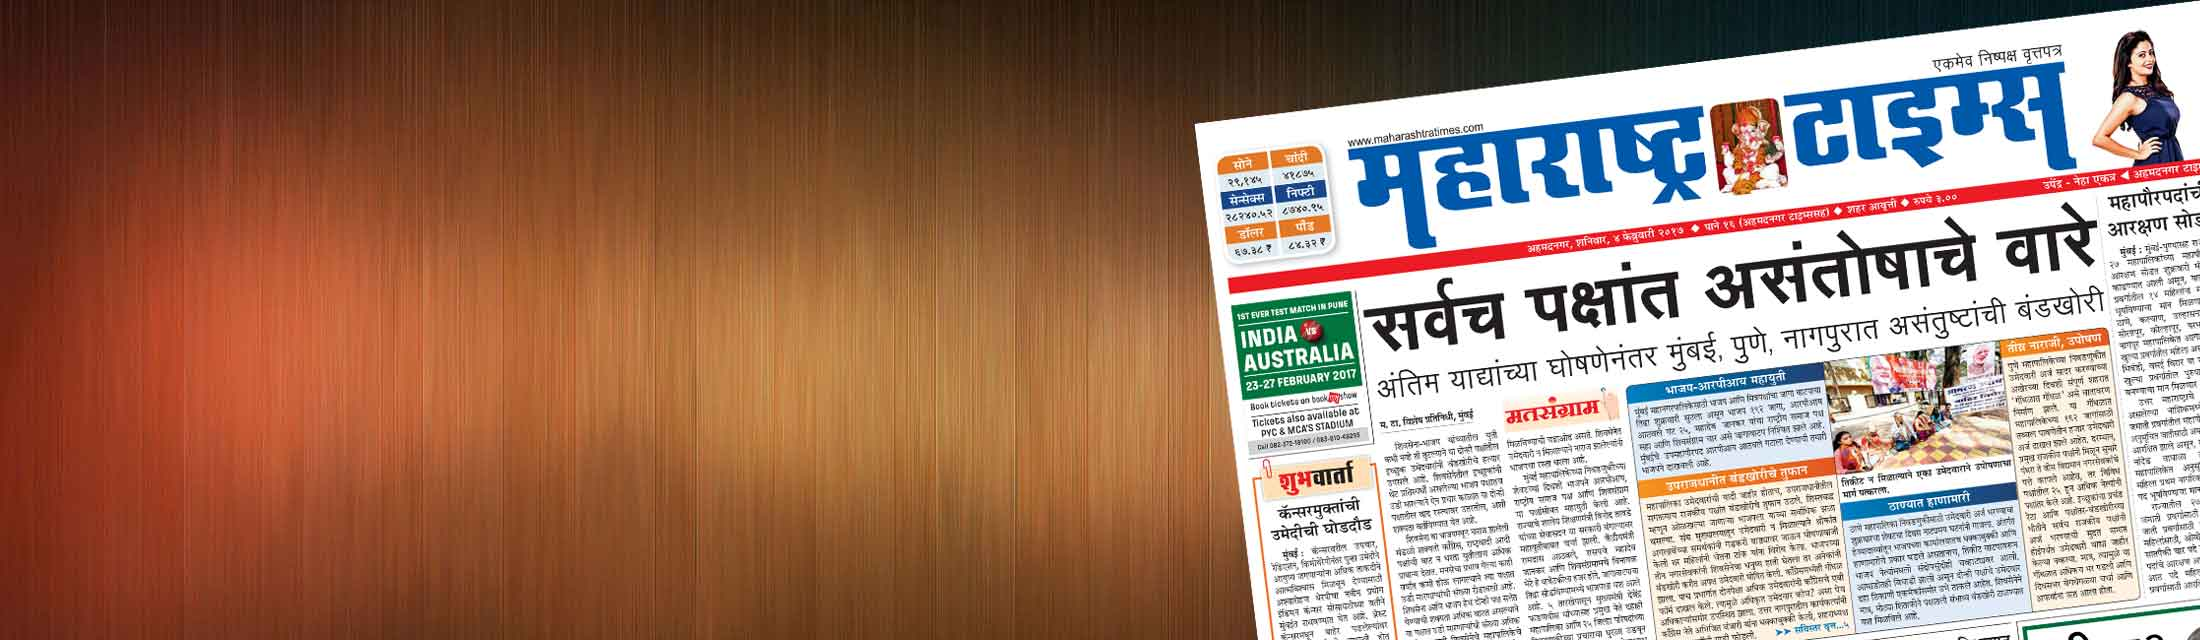 Maharashtra Times Newspaper Ads